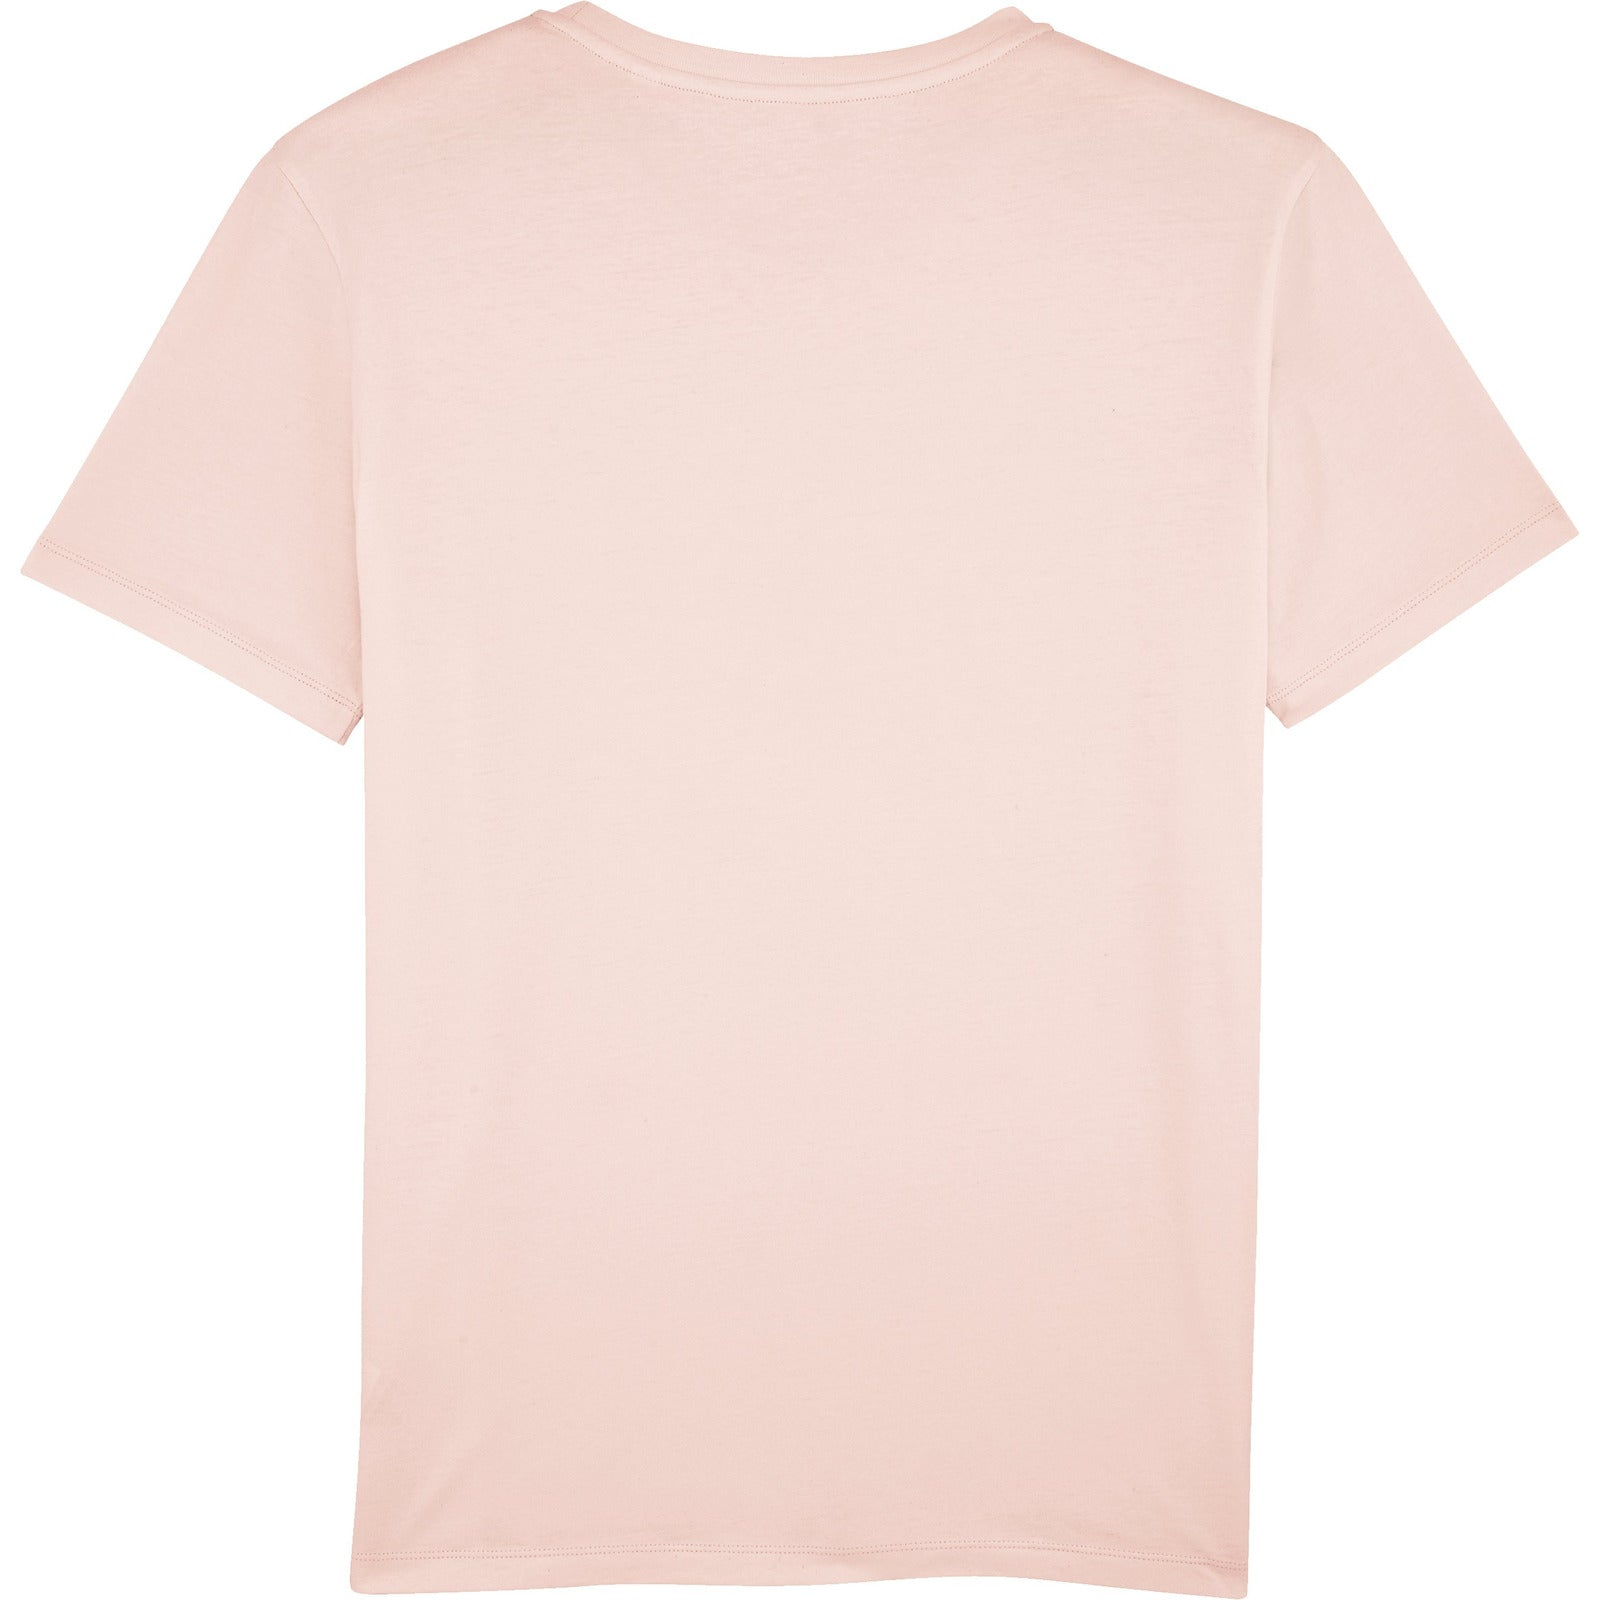 T-SHIRT REGULAR FIT [CREAM PINK] - Hanseat